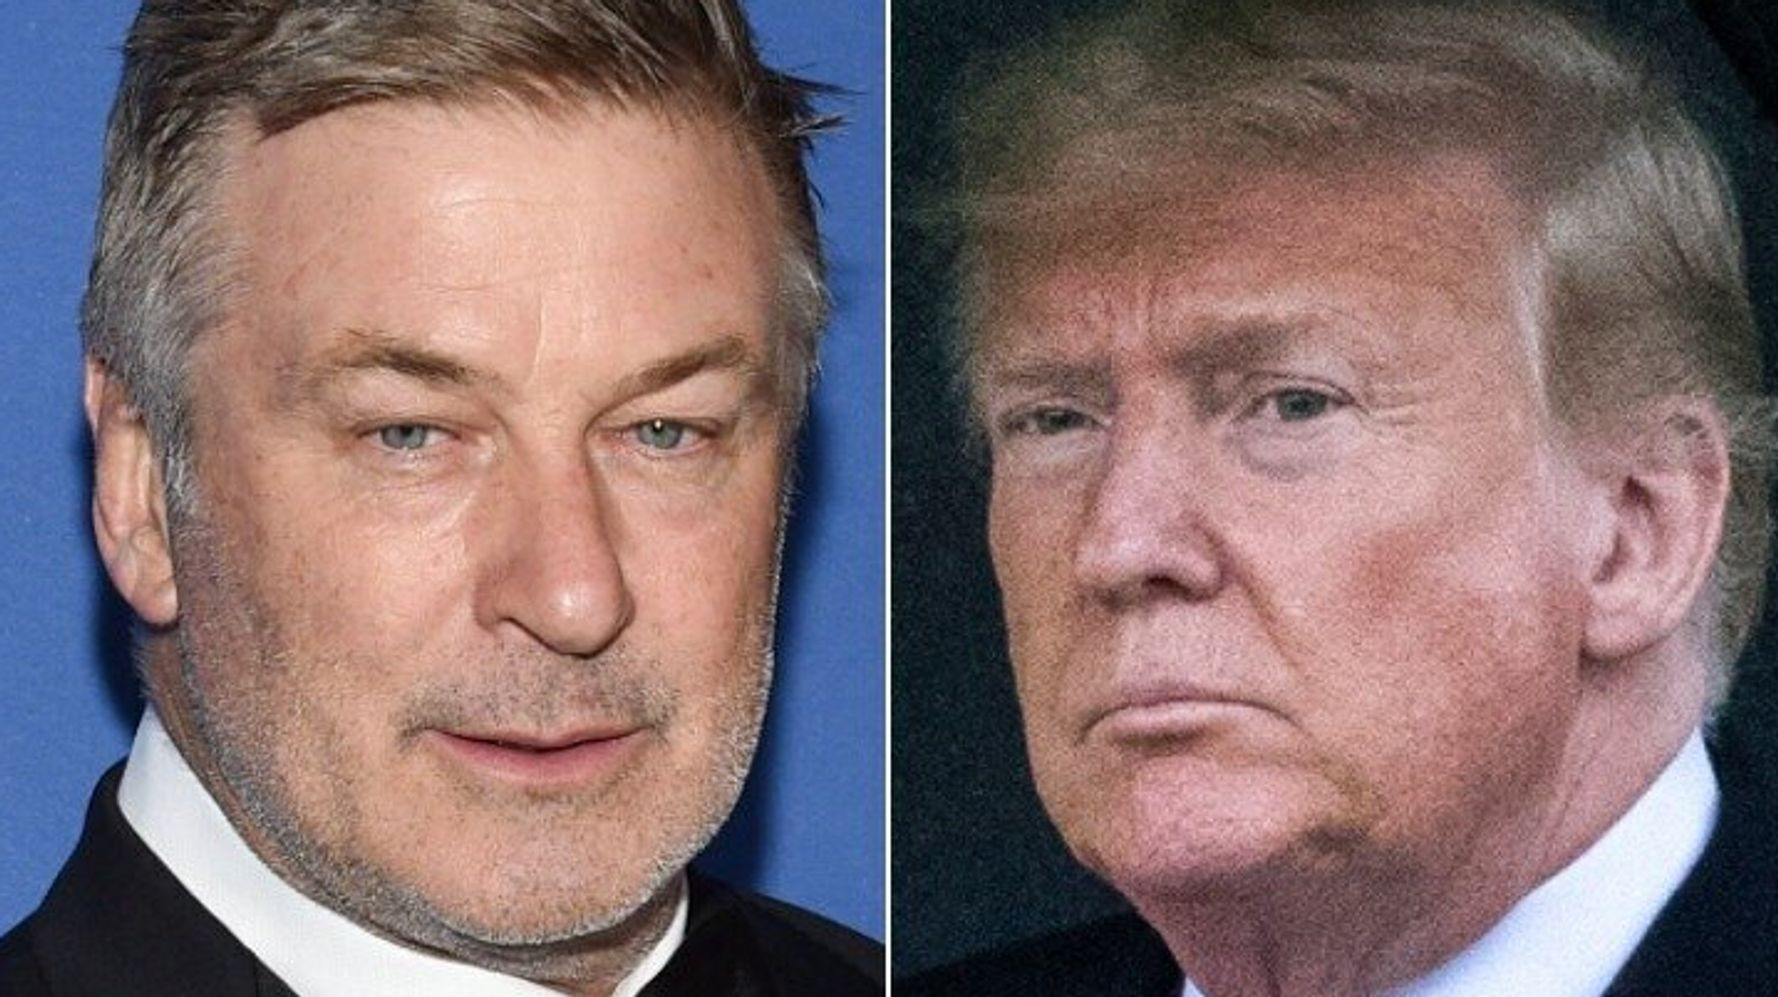 Westlake Legal Group 5e46597b2300005700163357 Alec Baldwin Warns GOP's 'Sniveling Fealty' To Trump Is Straight Out Of Nazi Germany